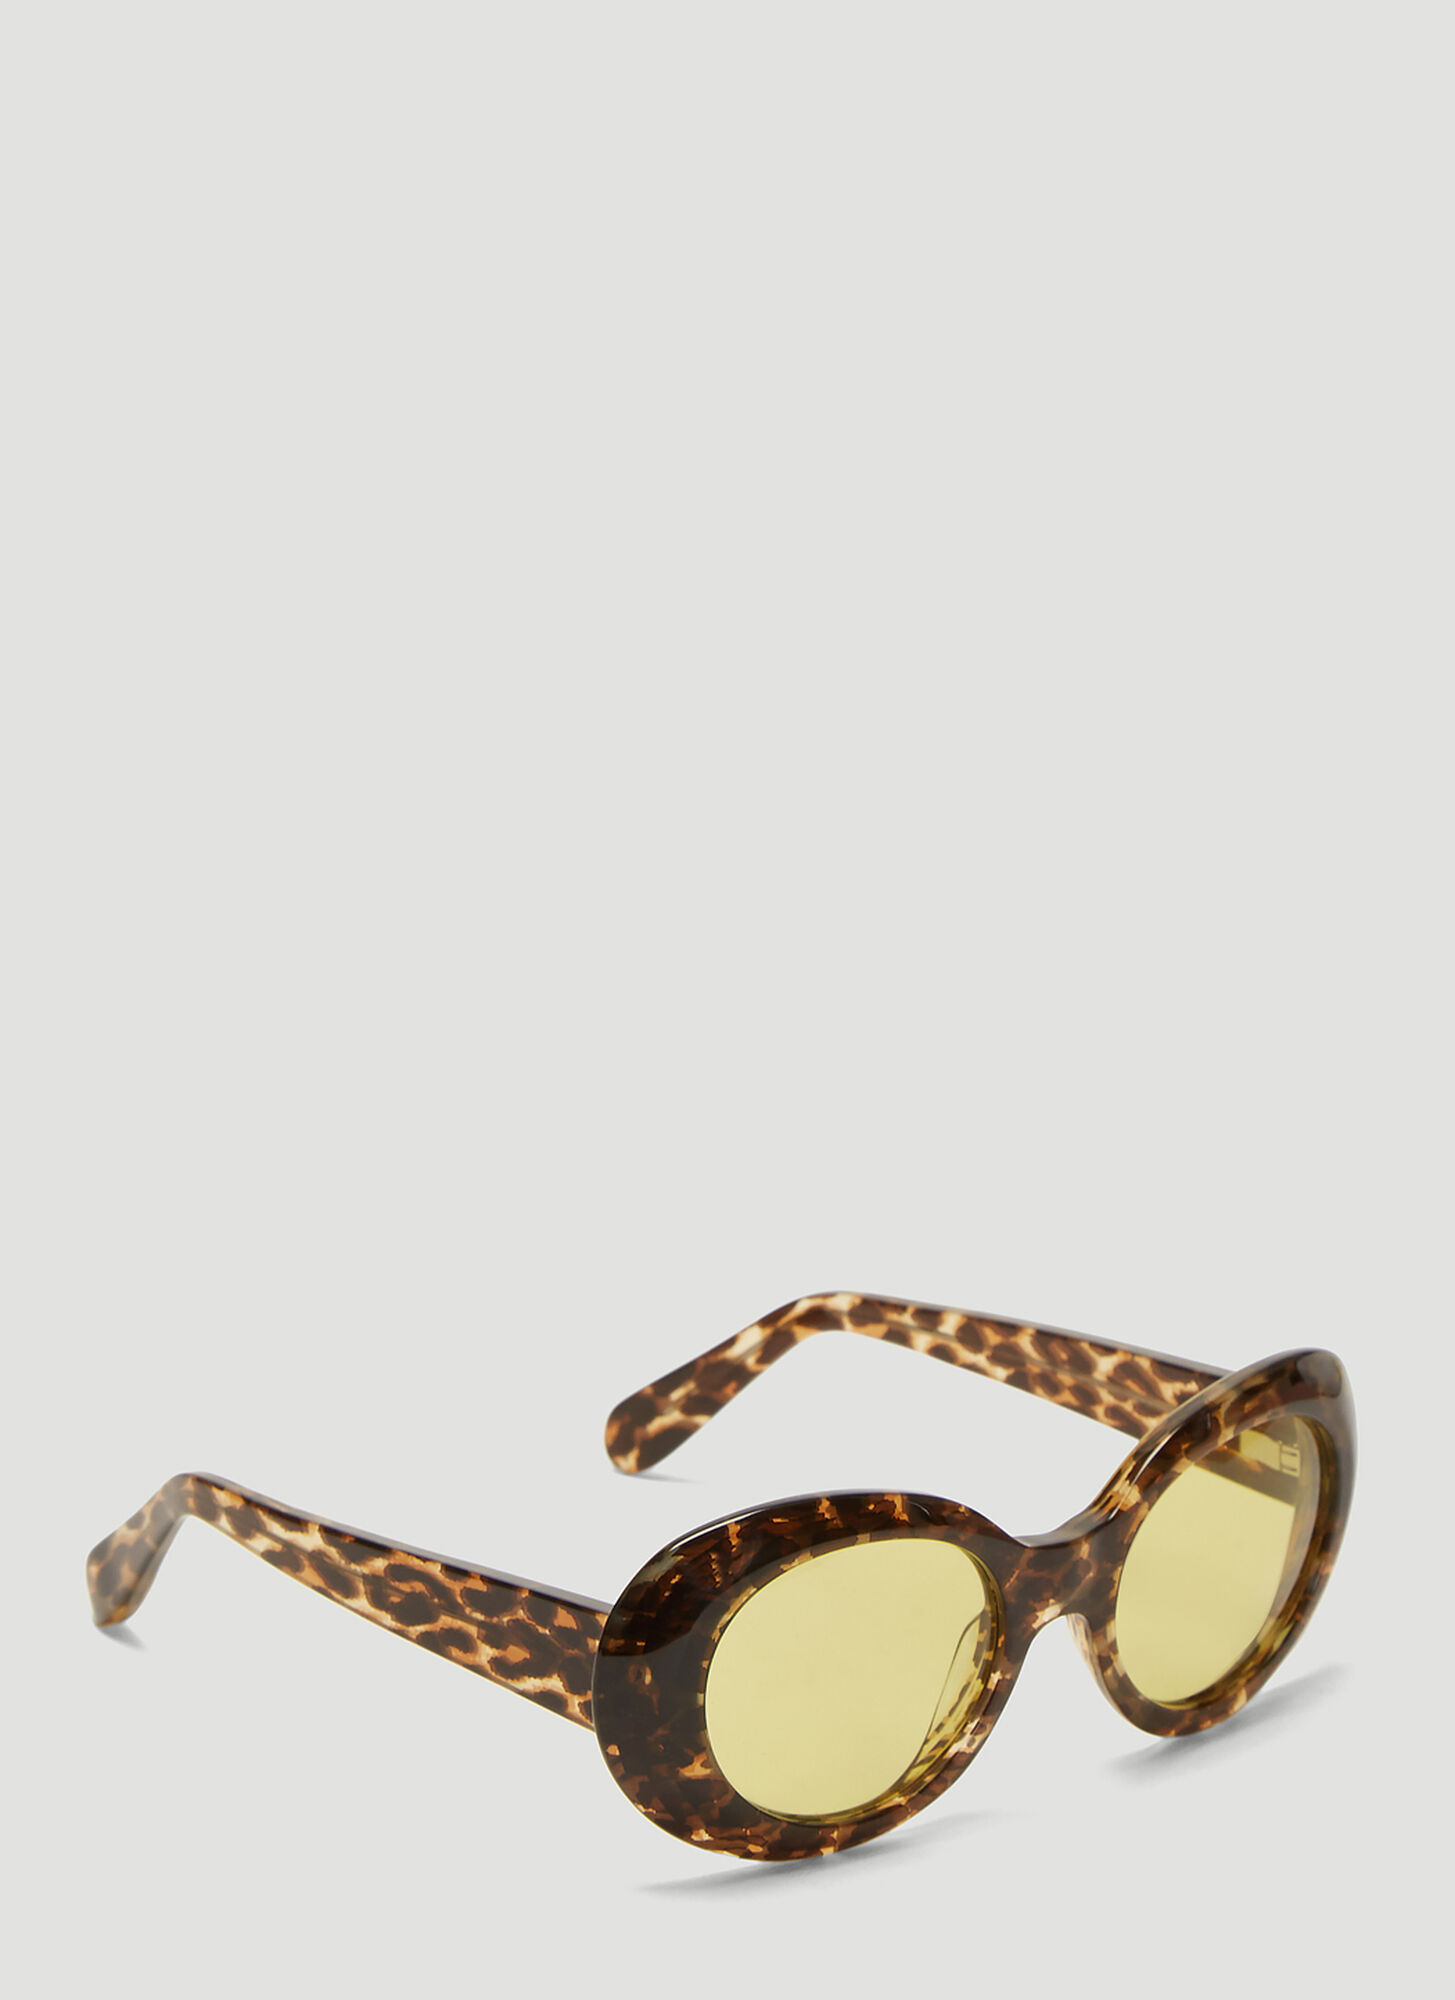 Acne Studios Mustang Sunglasses in Tortoiseshell size One Size